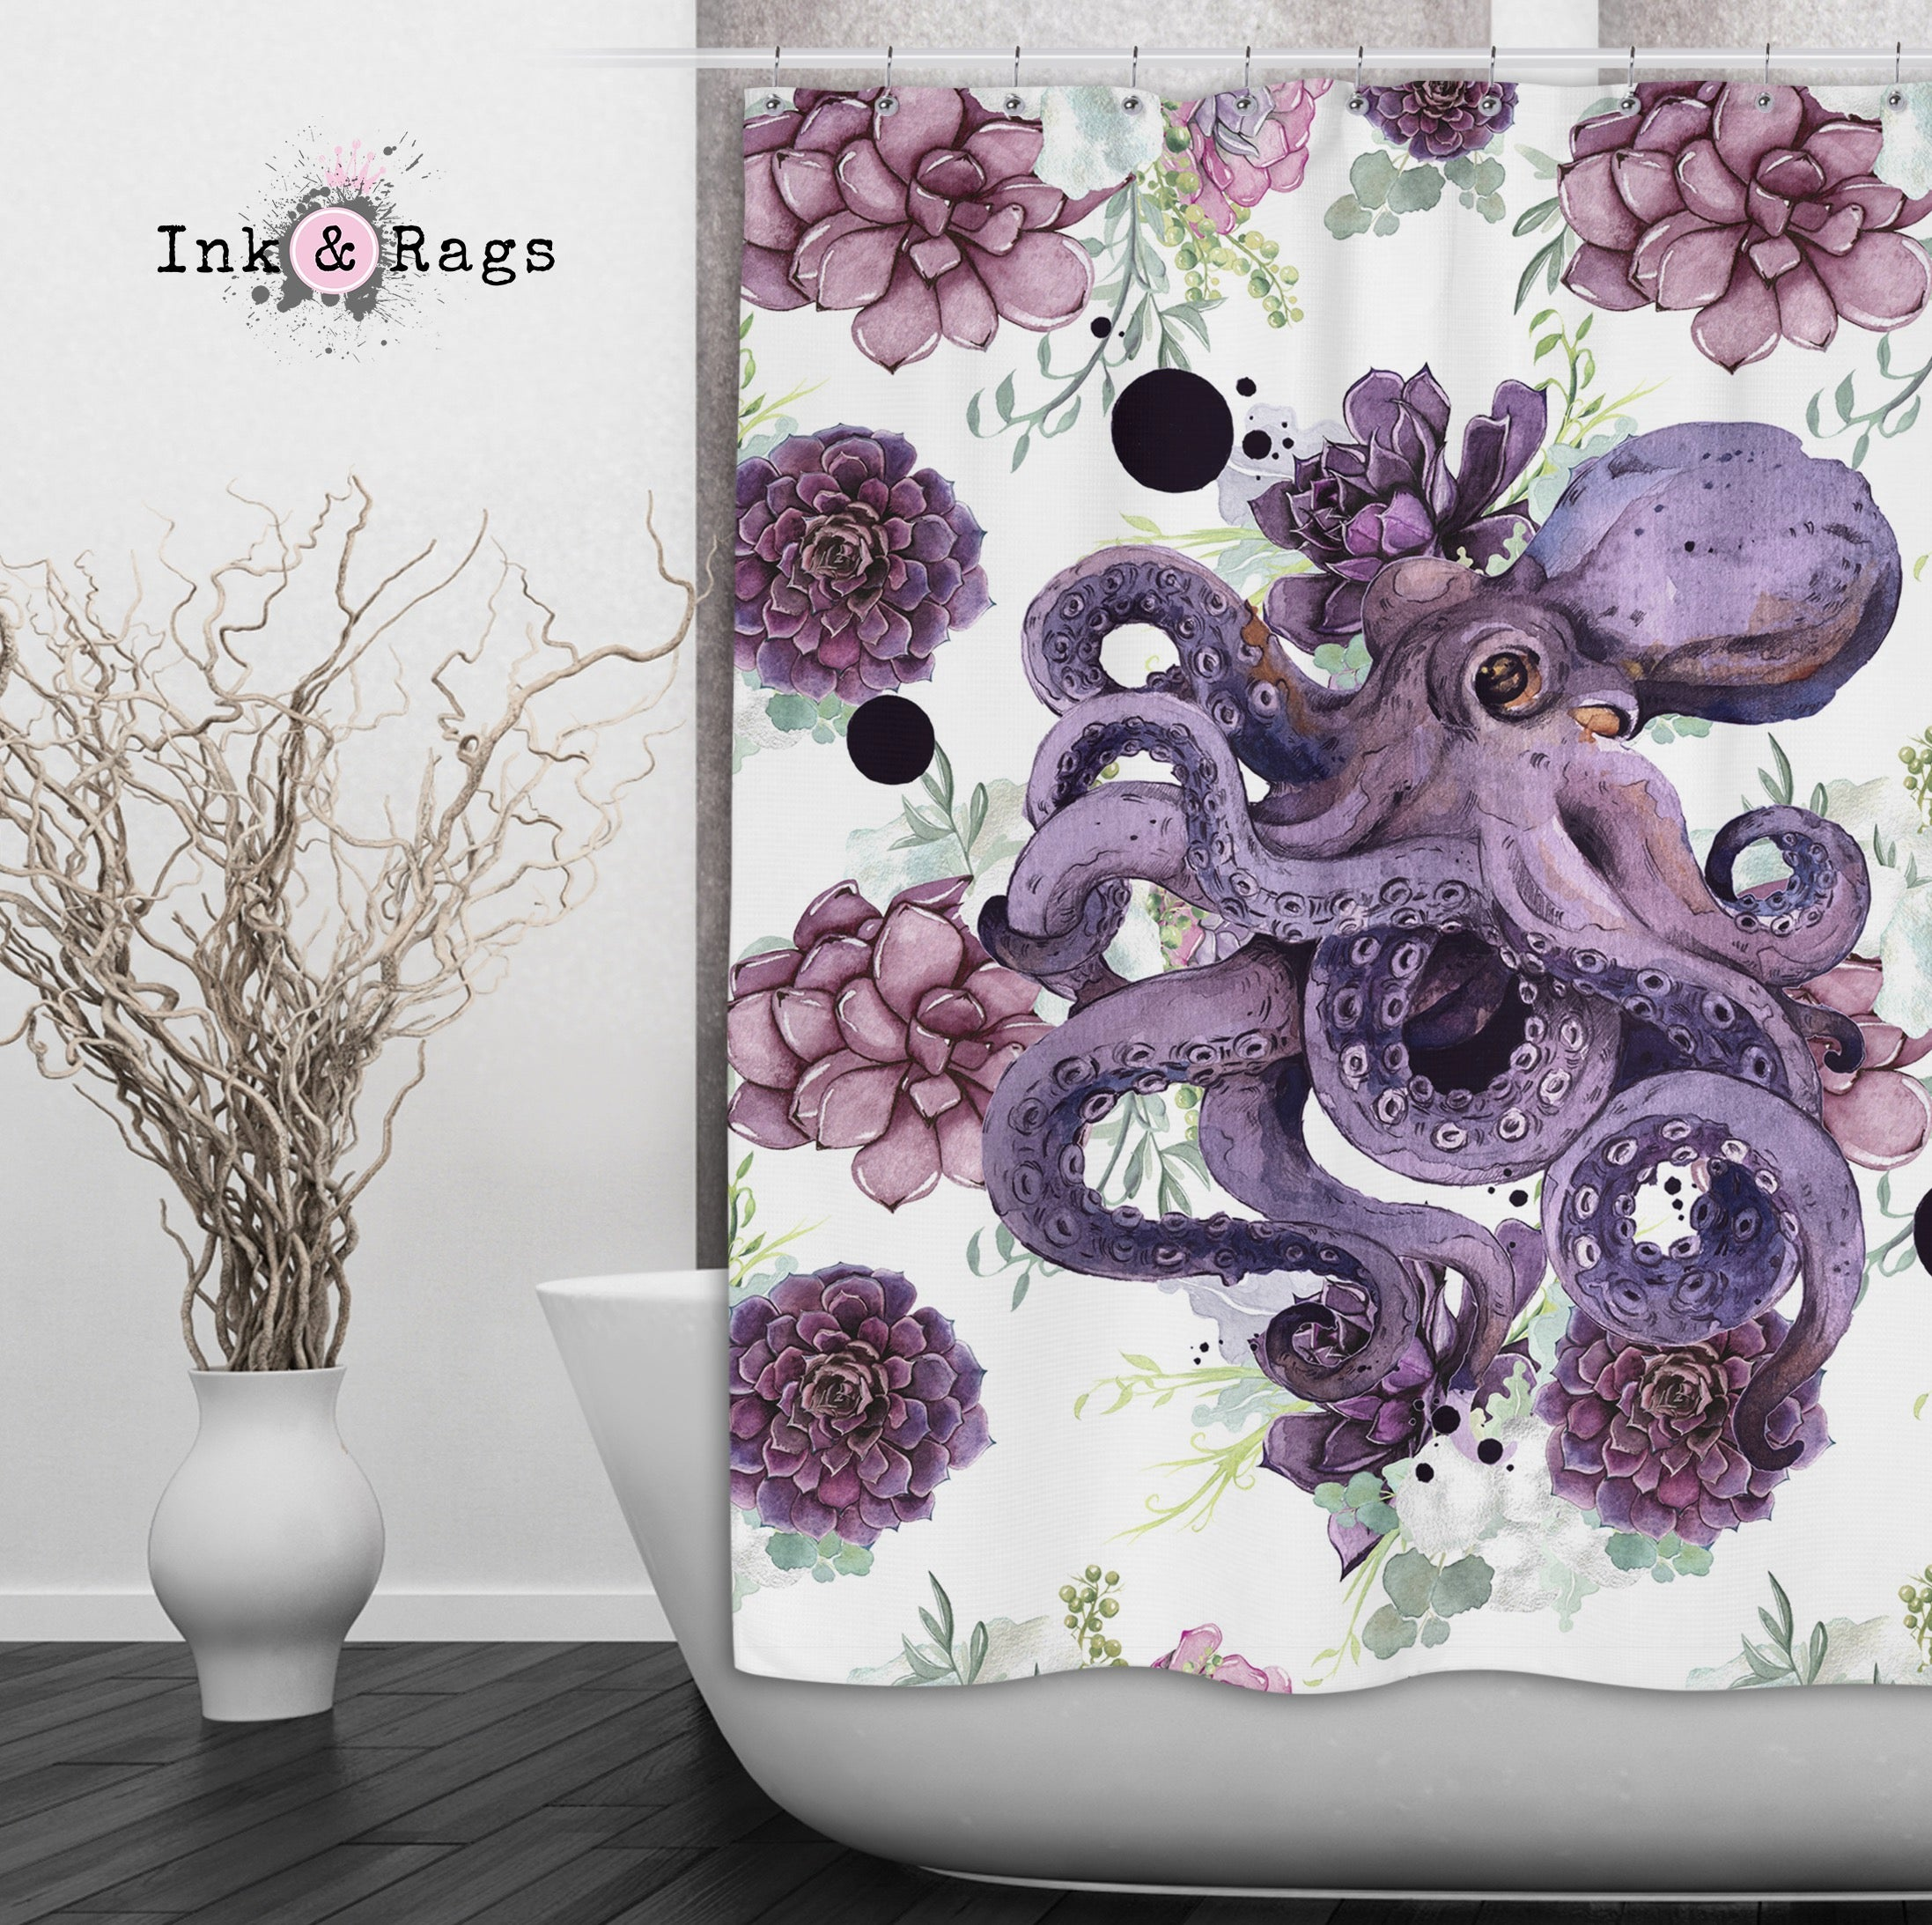 Succulent Octopus Ink Shower Curtains And Optional Bath Mats Ink And Rags